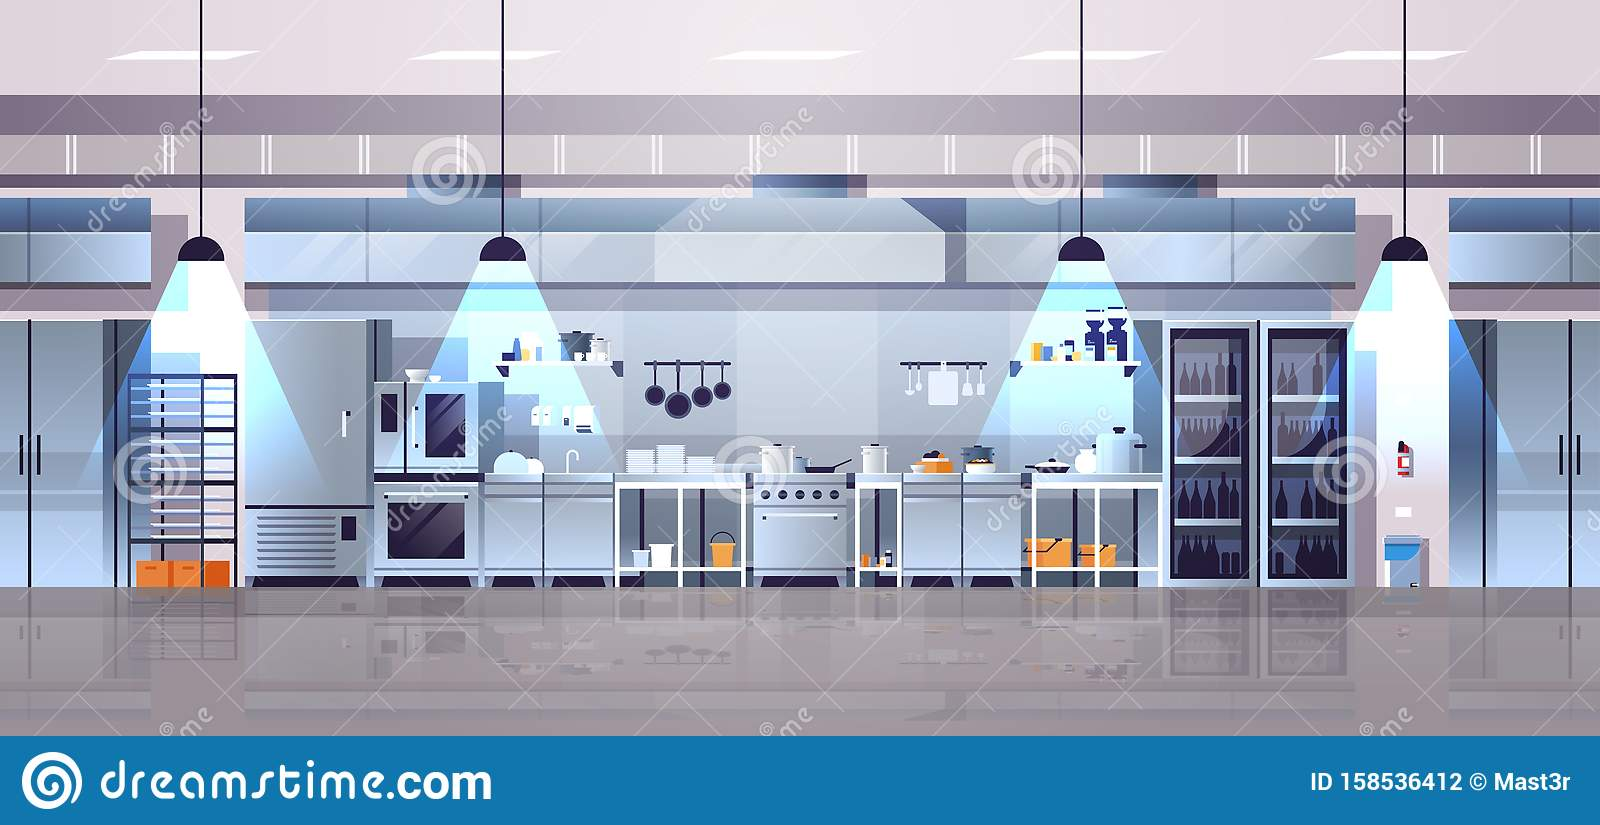 Modern Interior Of Professional Cafe Or Restaurant Kitchen With Kitchenware And Equipment Cooking Culinary Concept Flat Stock Vector Illustration Of Design Background 158536412